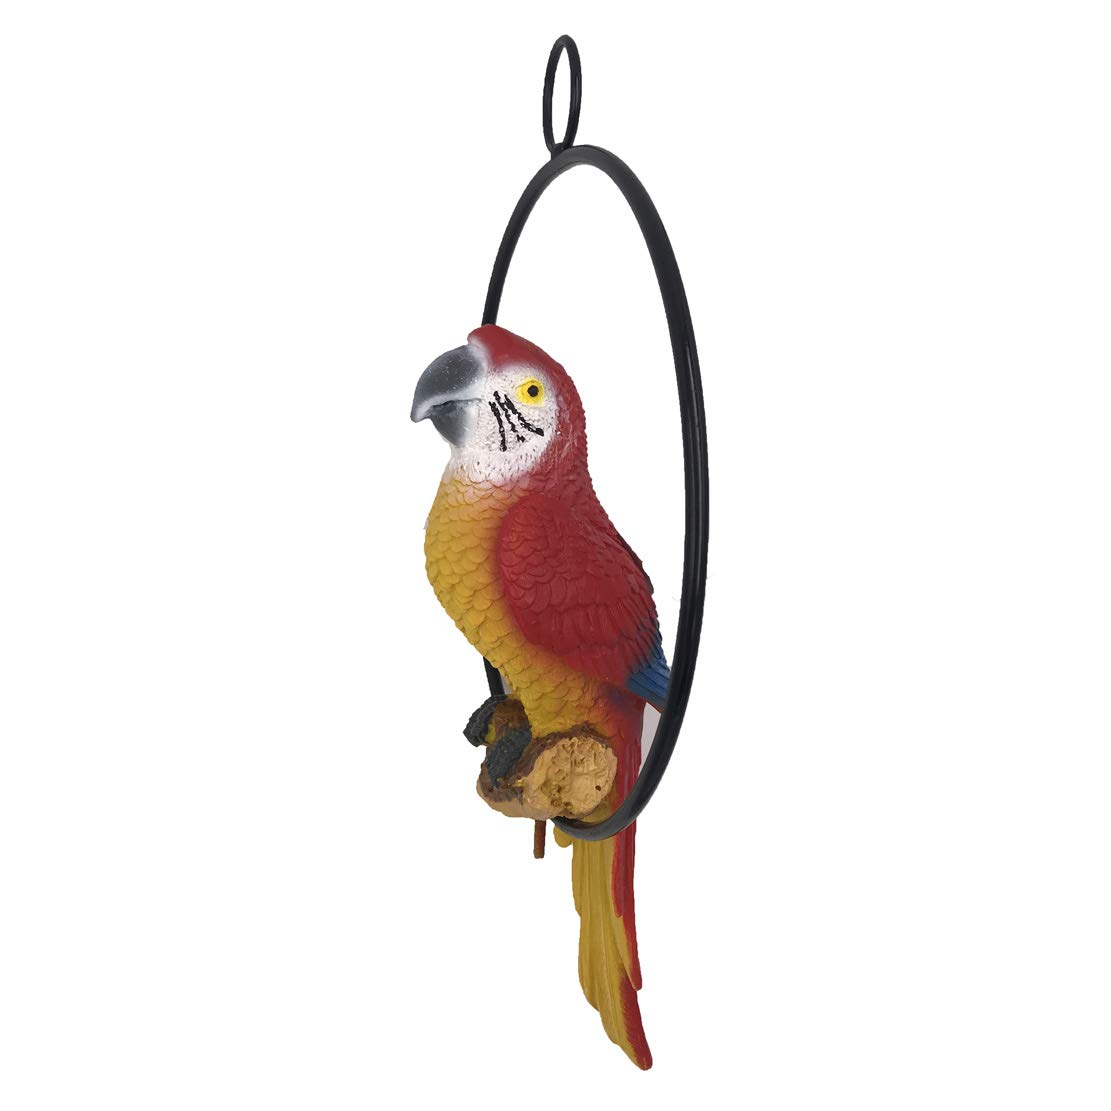 Hanging Parrot Statue On Metal Round Ring Decor for Patio Garden Lawn and Nature Lovers